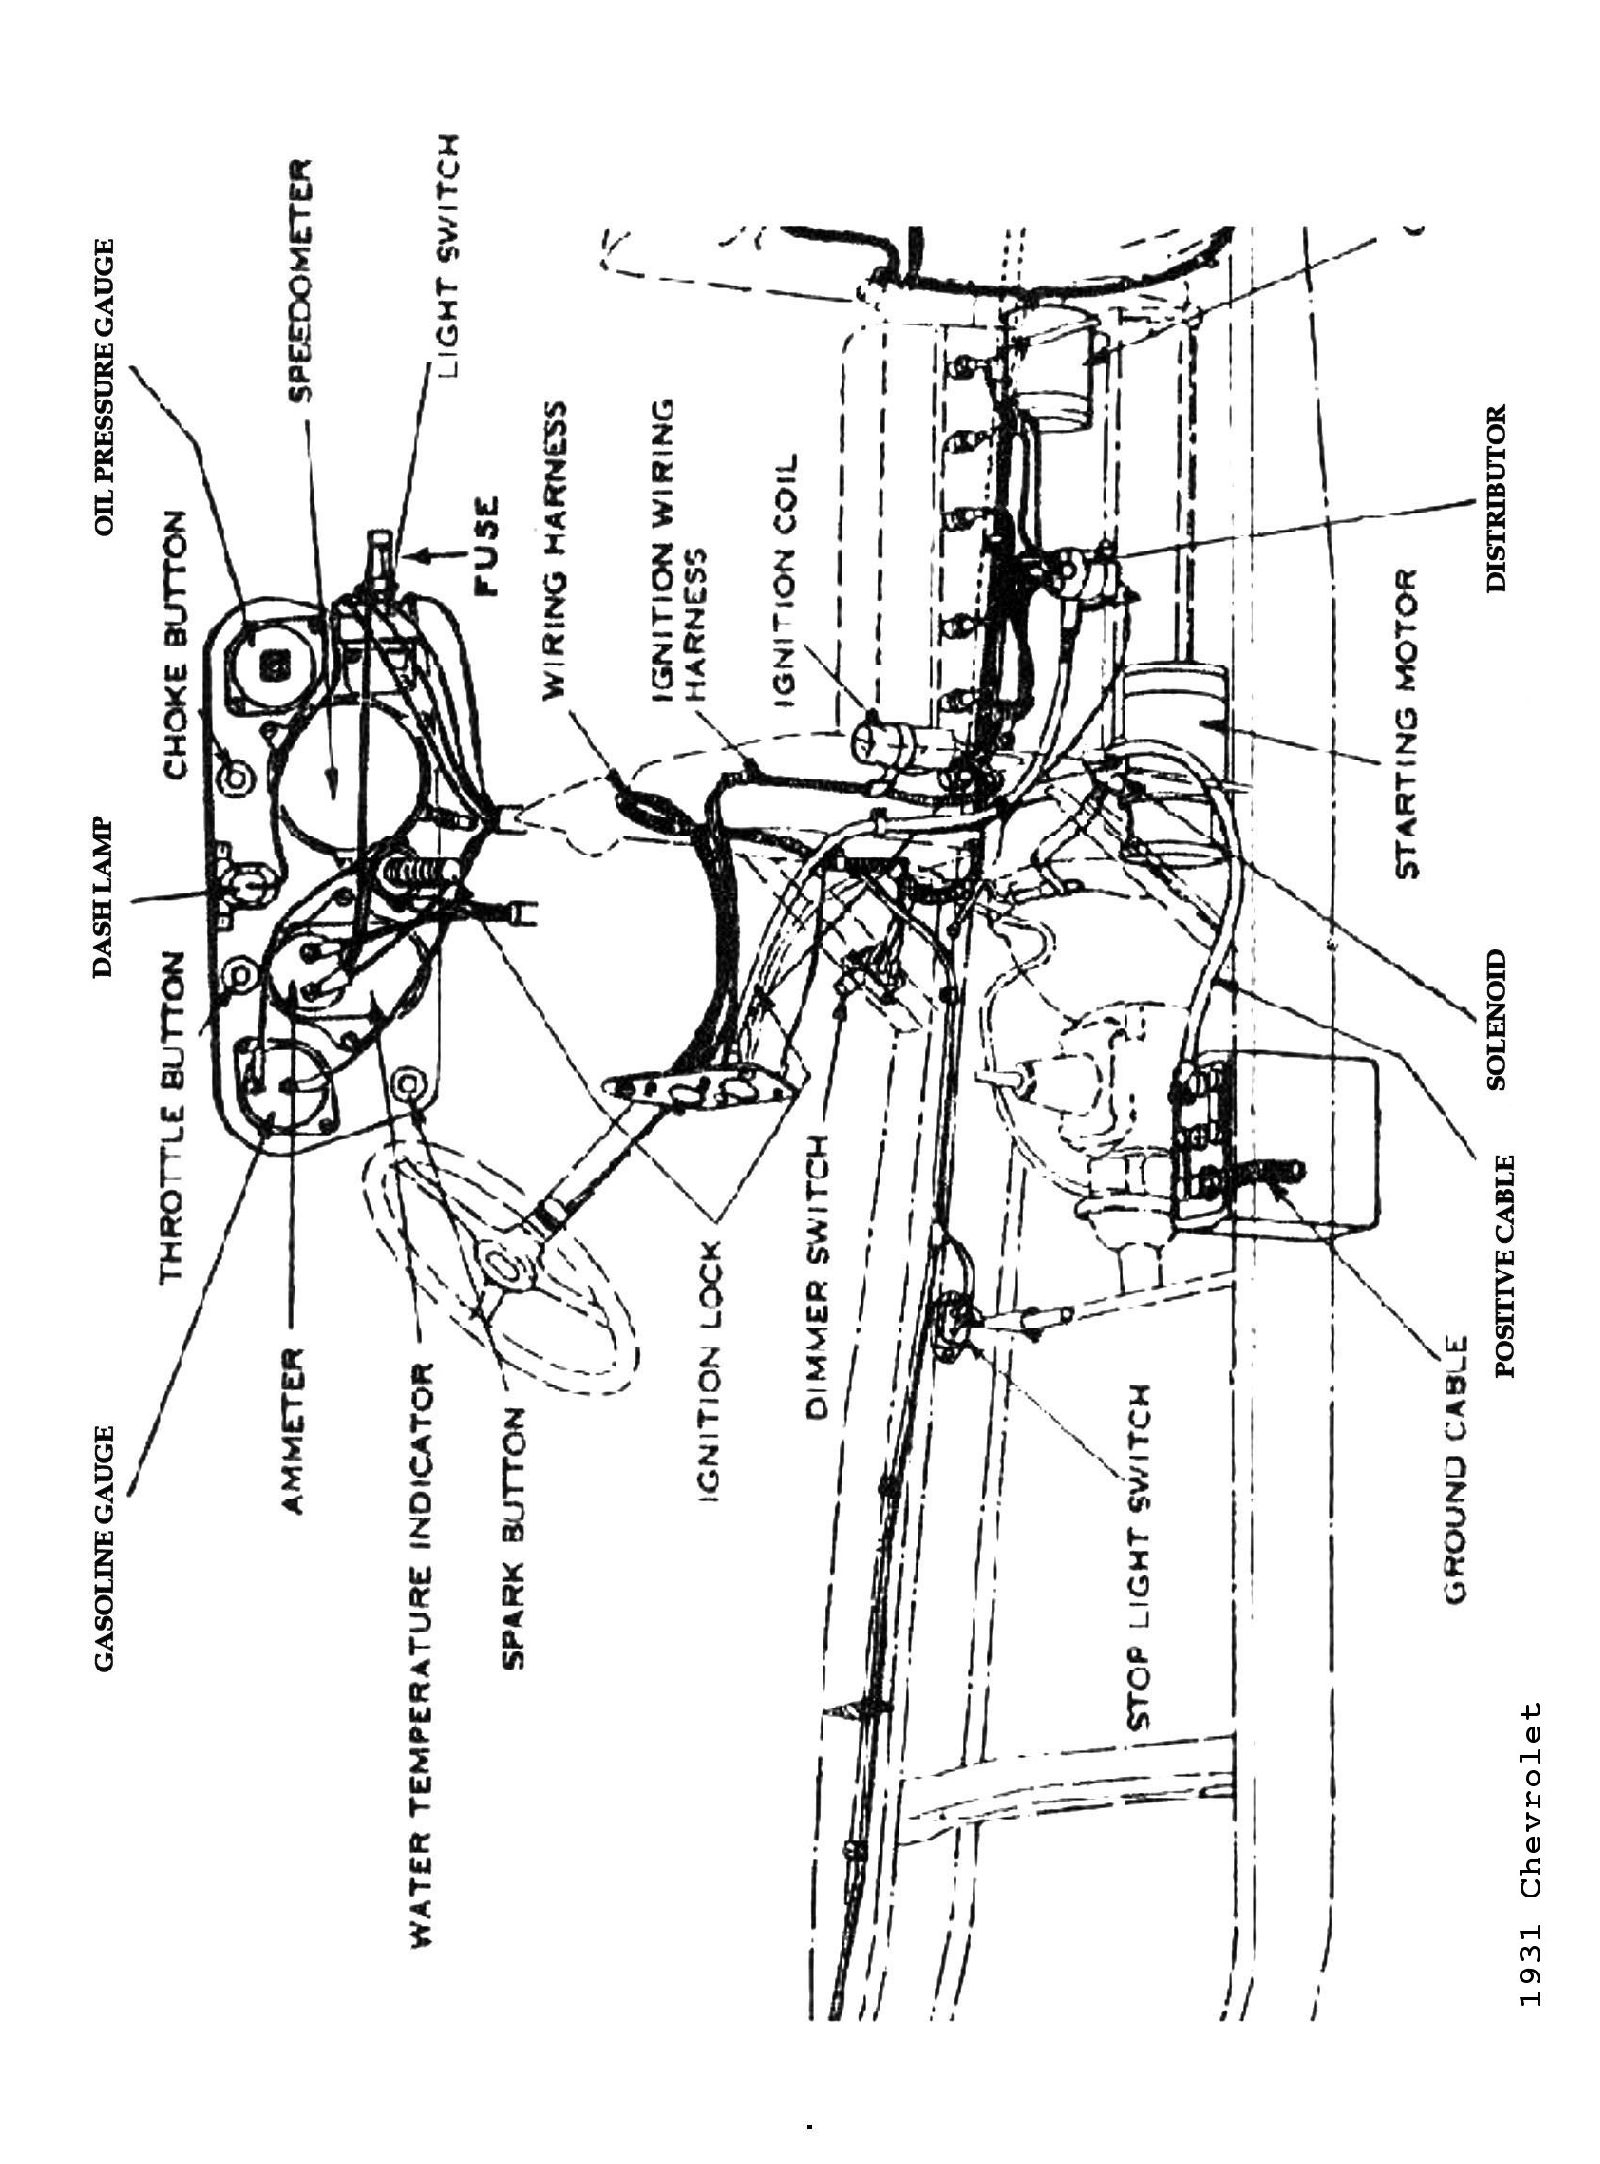 K Series Engine Harness